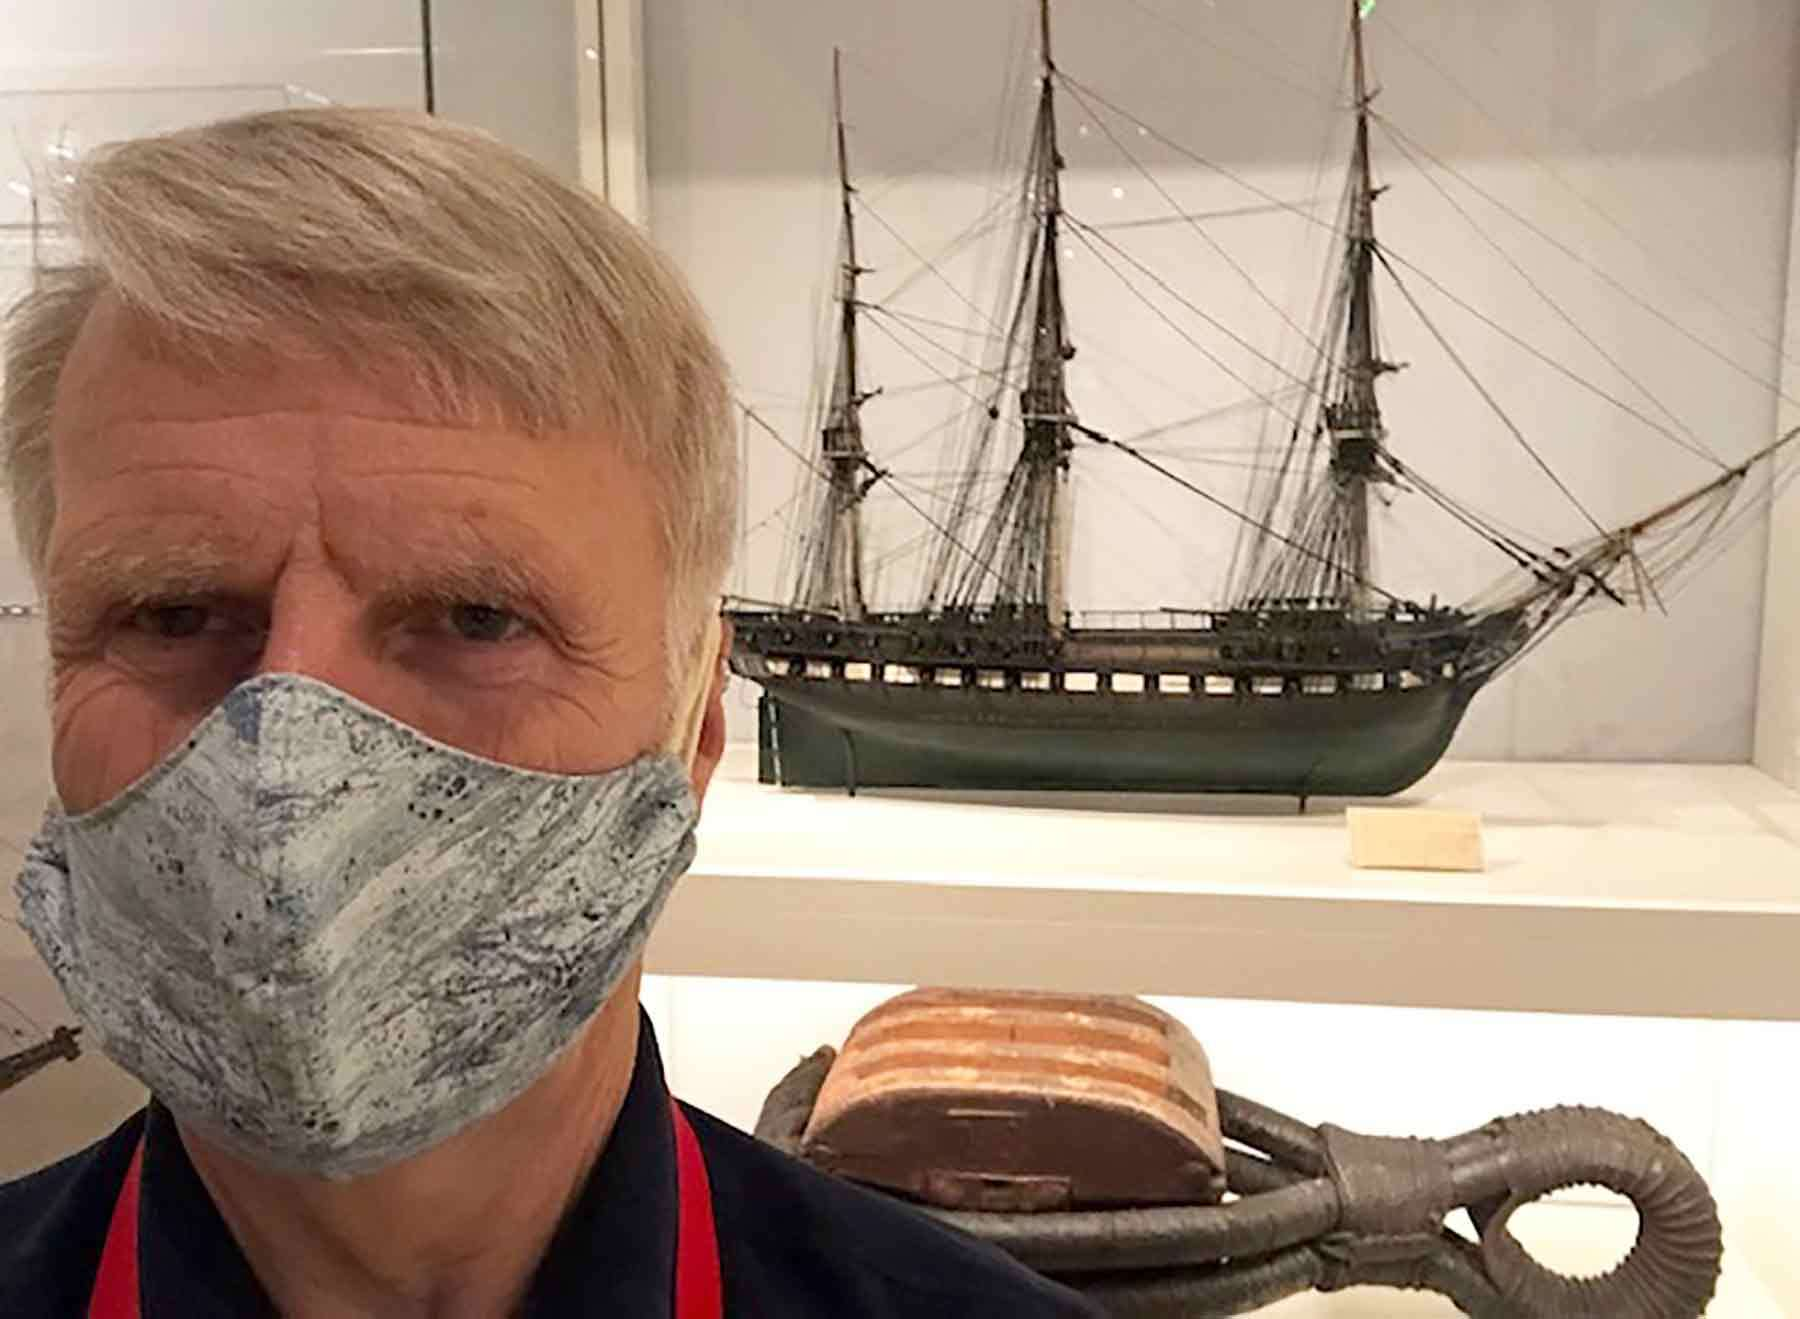 A close up of Bob Monk wearing a mask in front of a model ship in a gallery